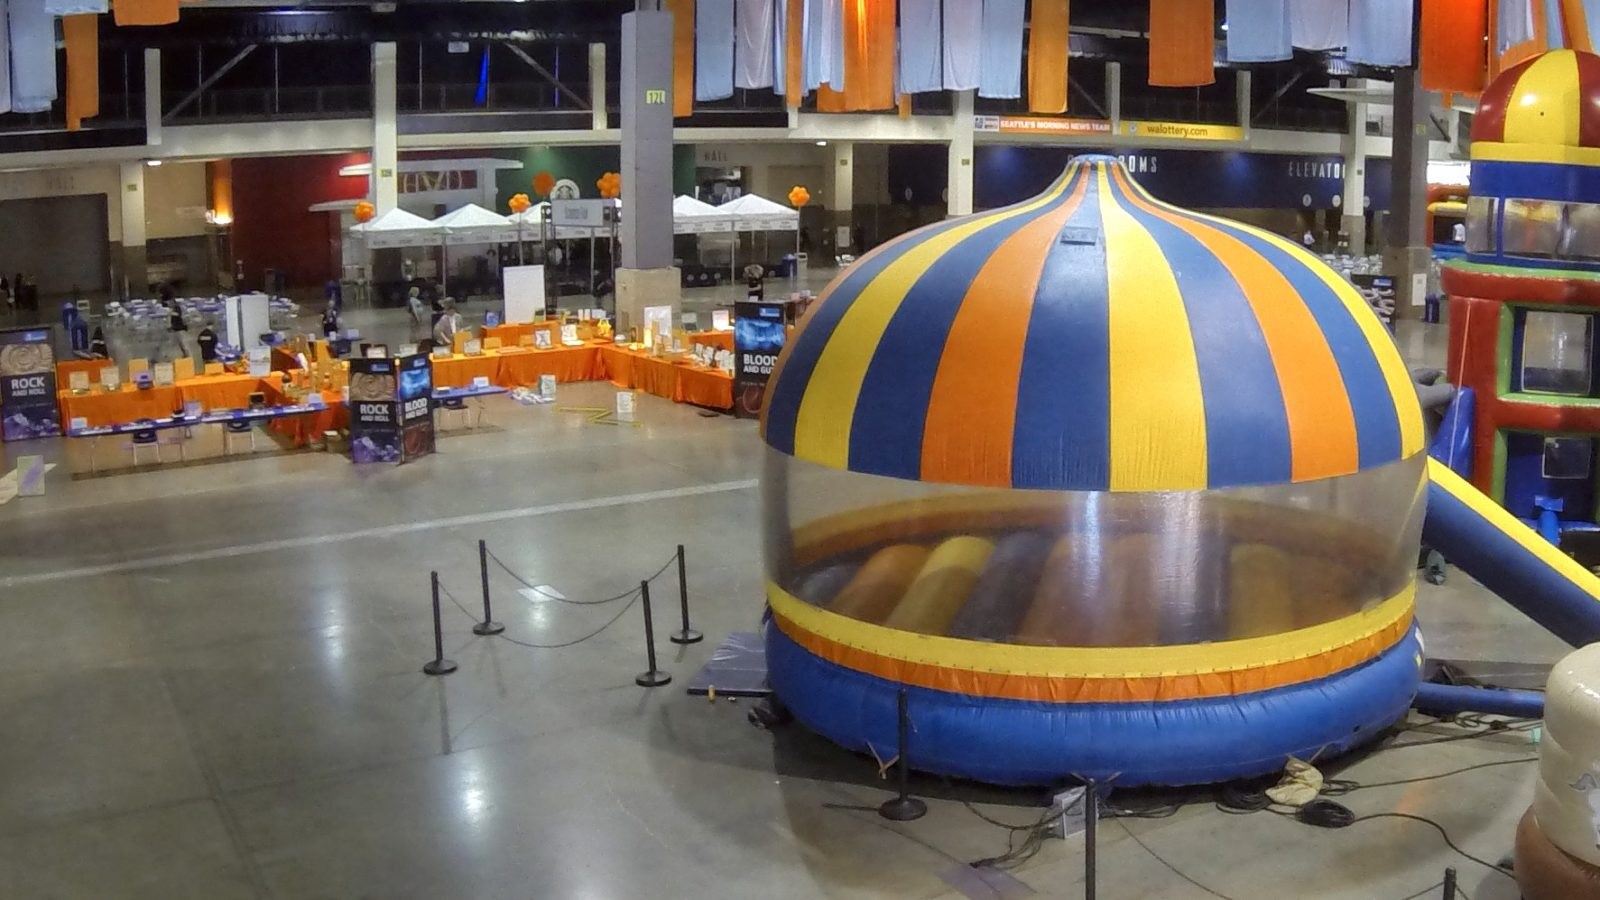 20' Round Enclosed Bouncer